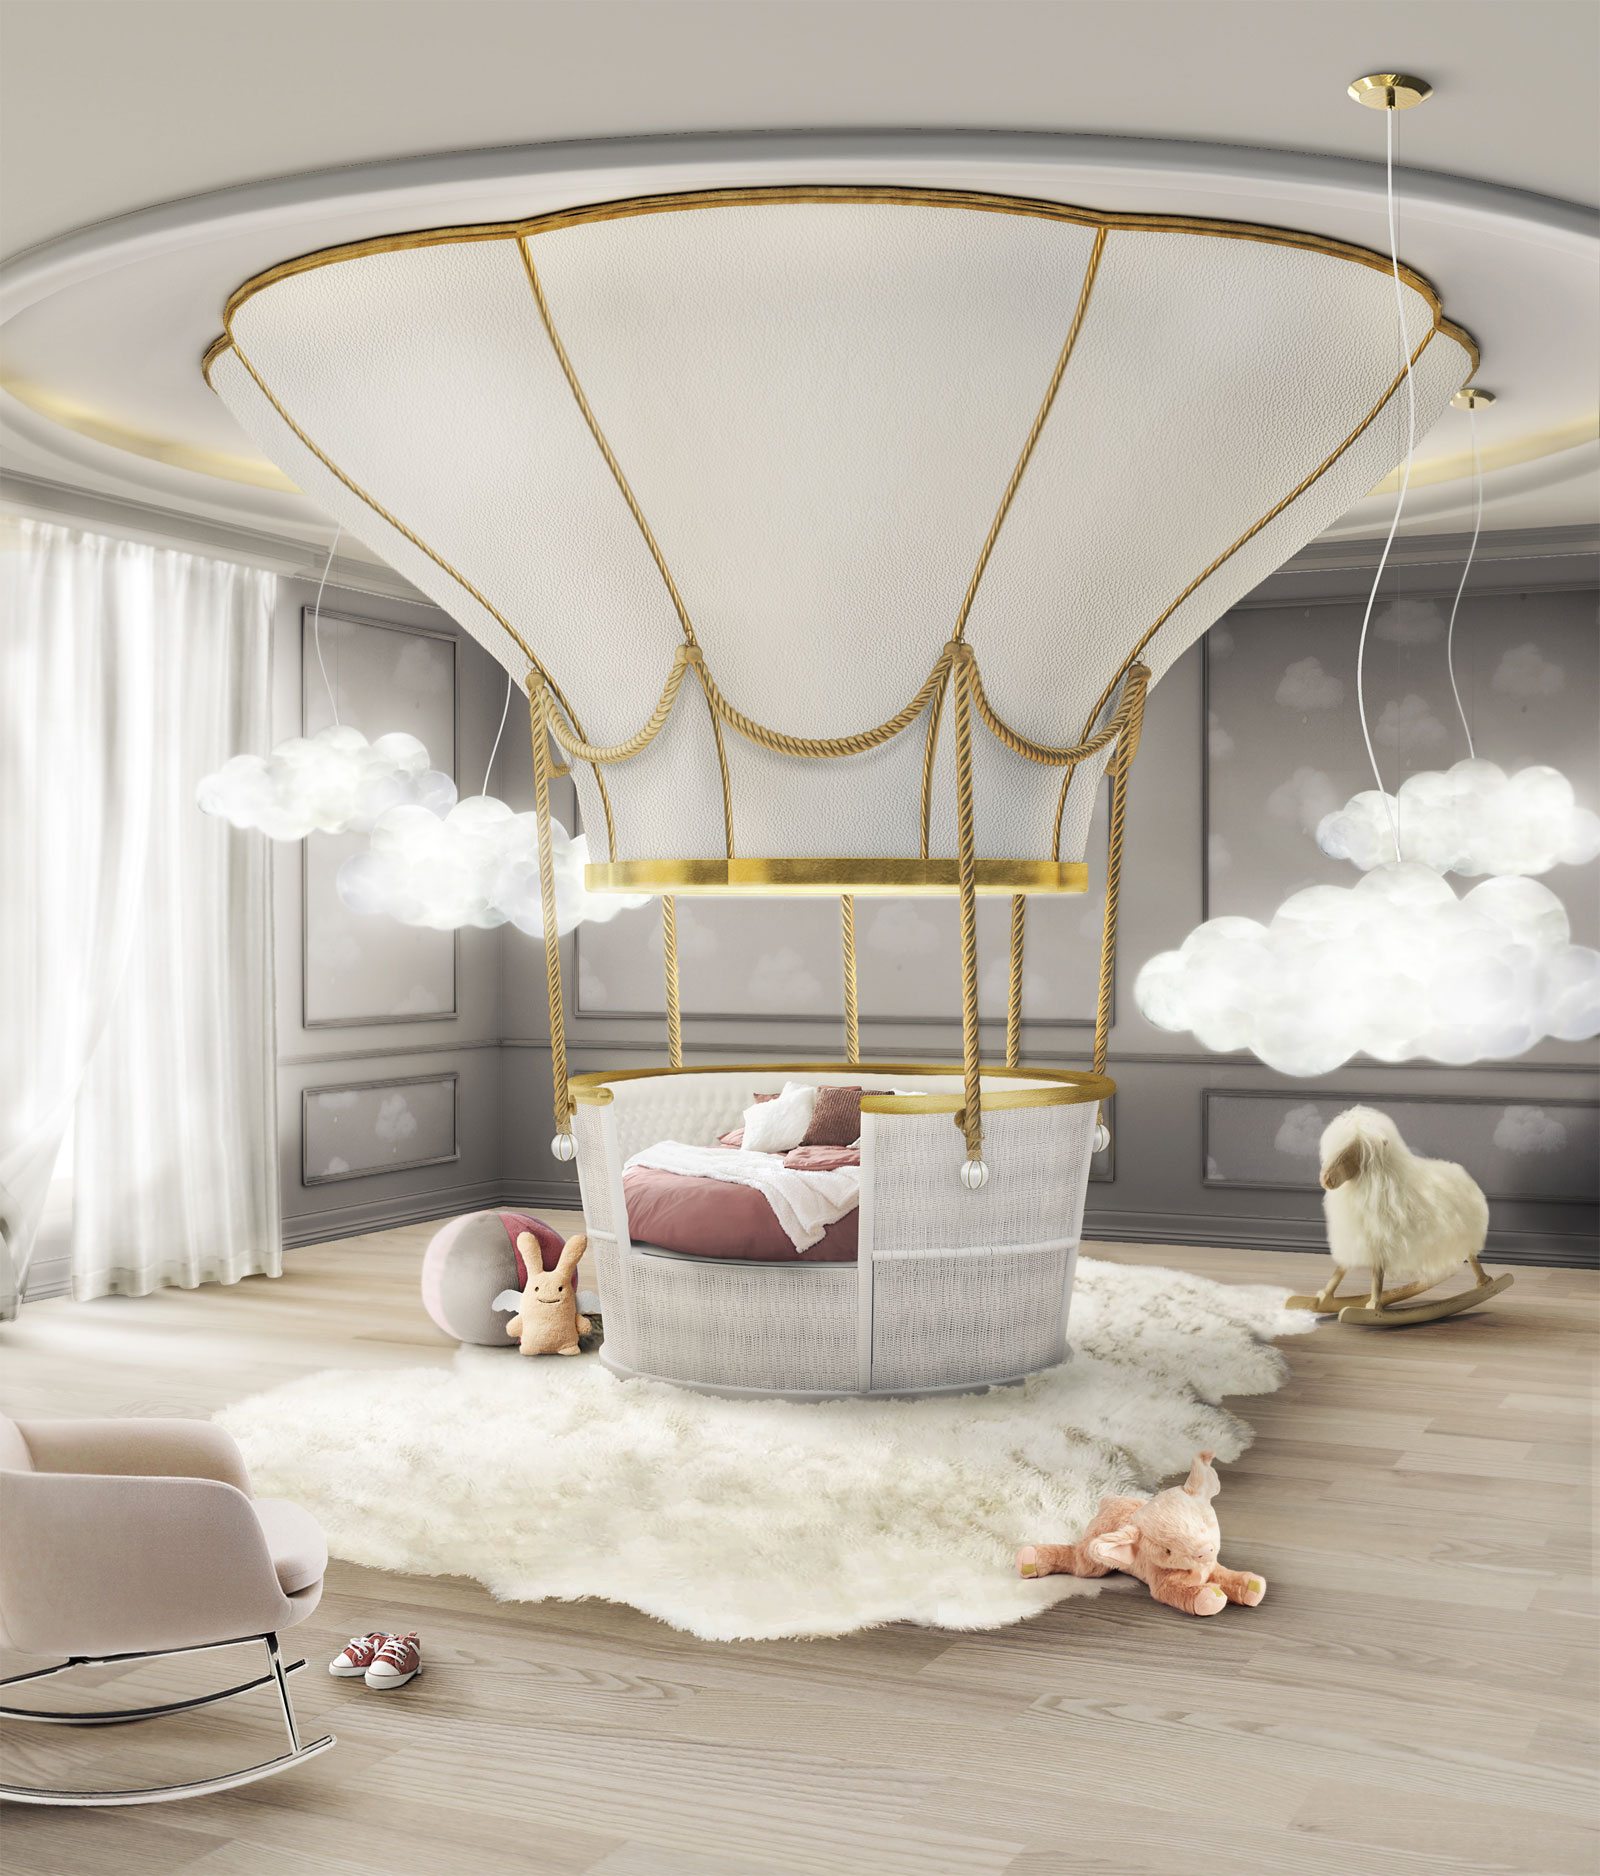 Three amazing beds for children that will make adults jealous for Amazing bedroom designs